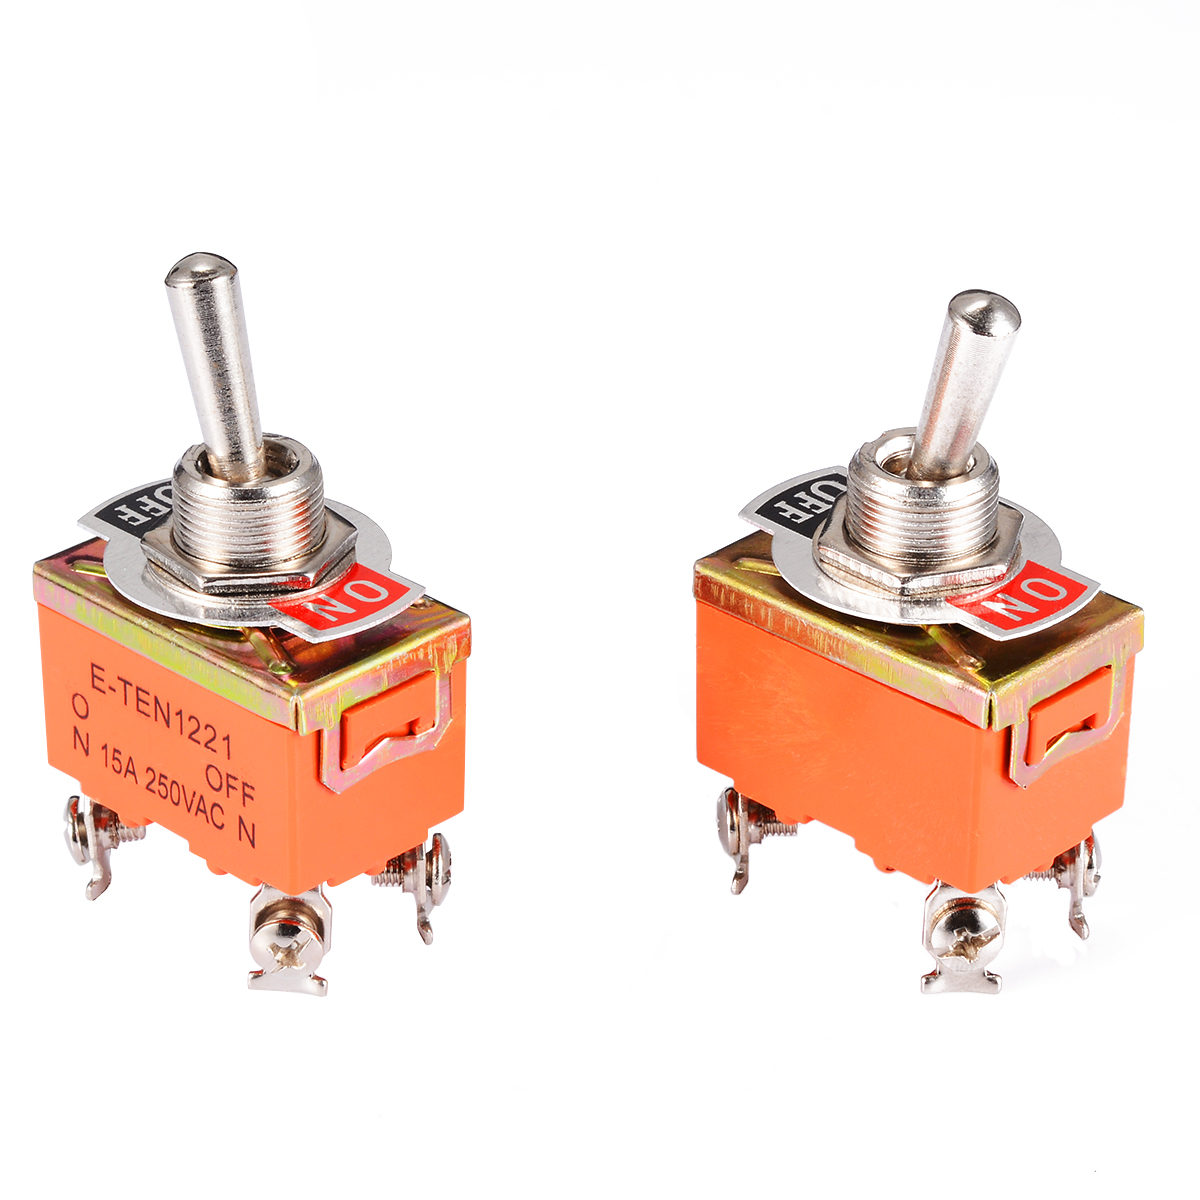 SPST ON//OFF 2 Position Toggle Switch AC 250V 15A  Practical 12mm Panel Mount